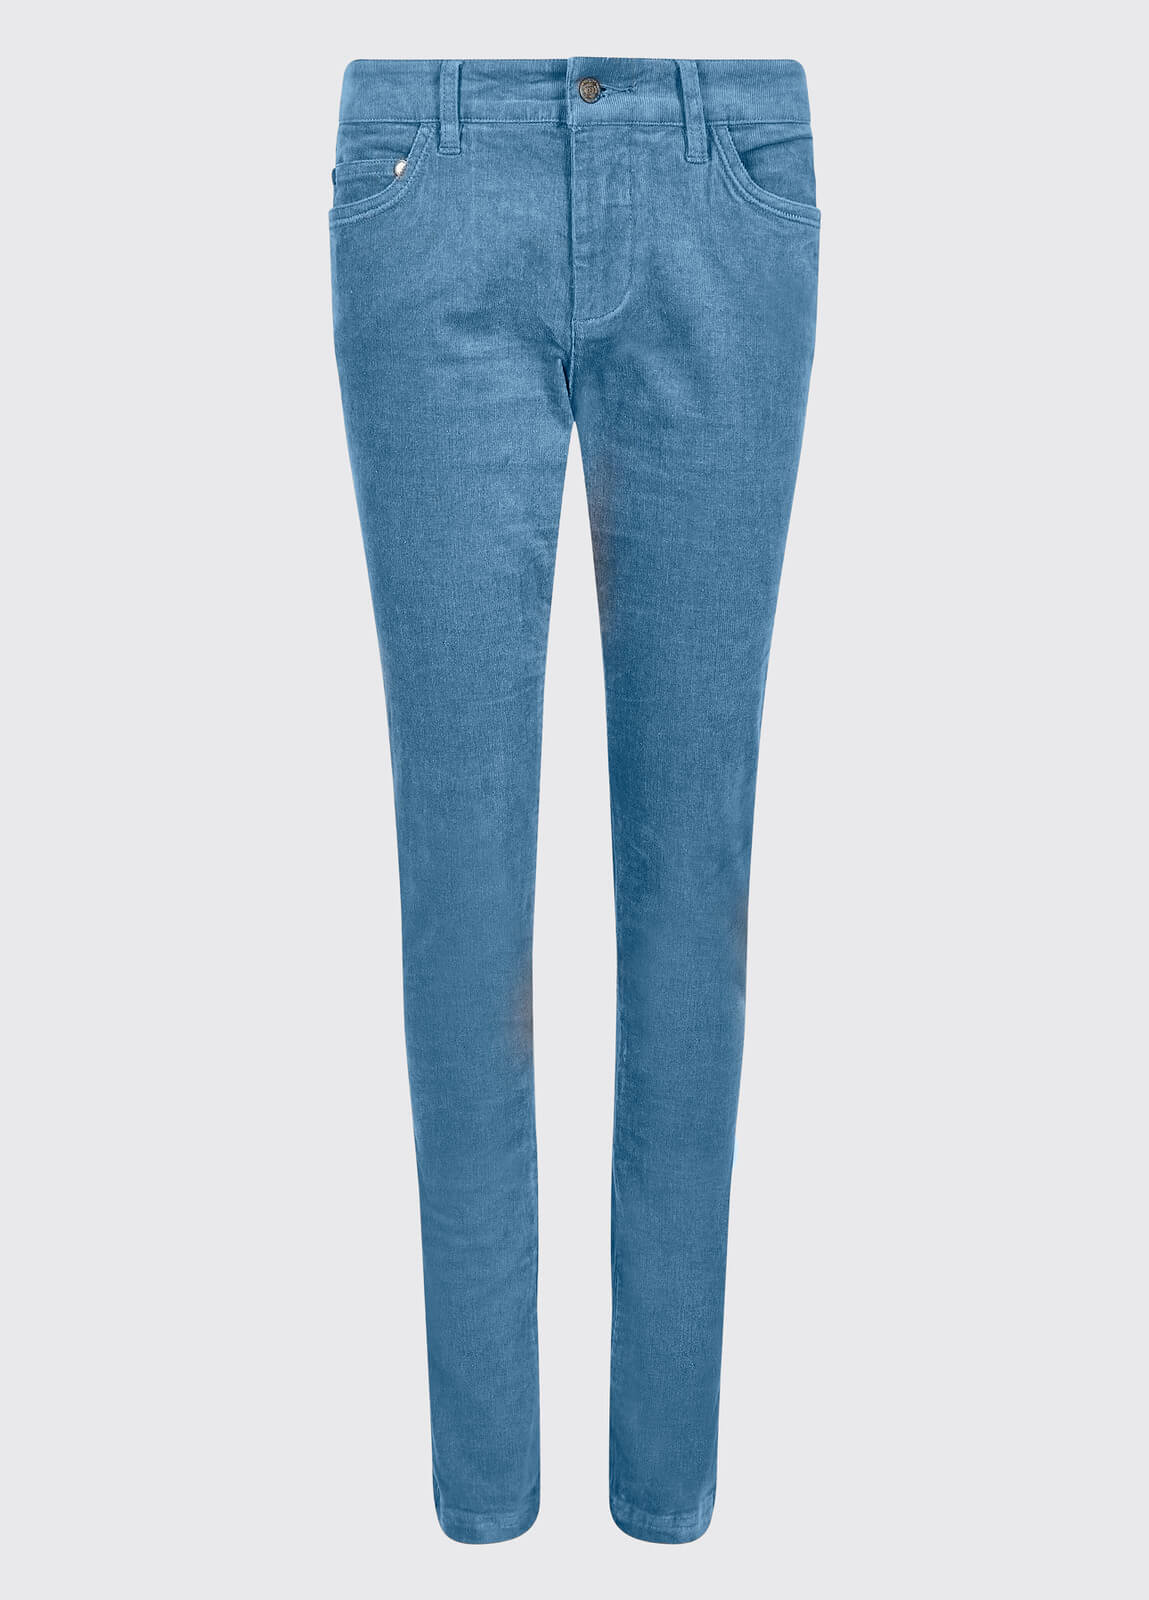 Honeysuckle Jeans - Denim